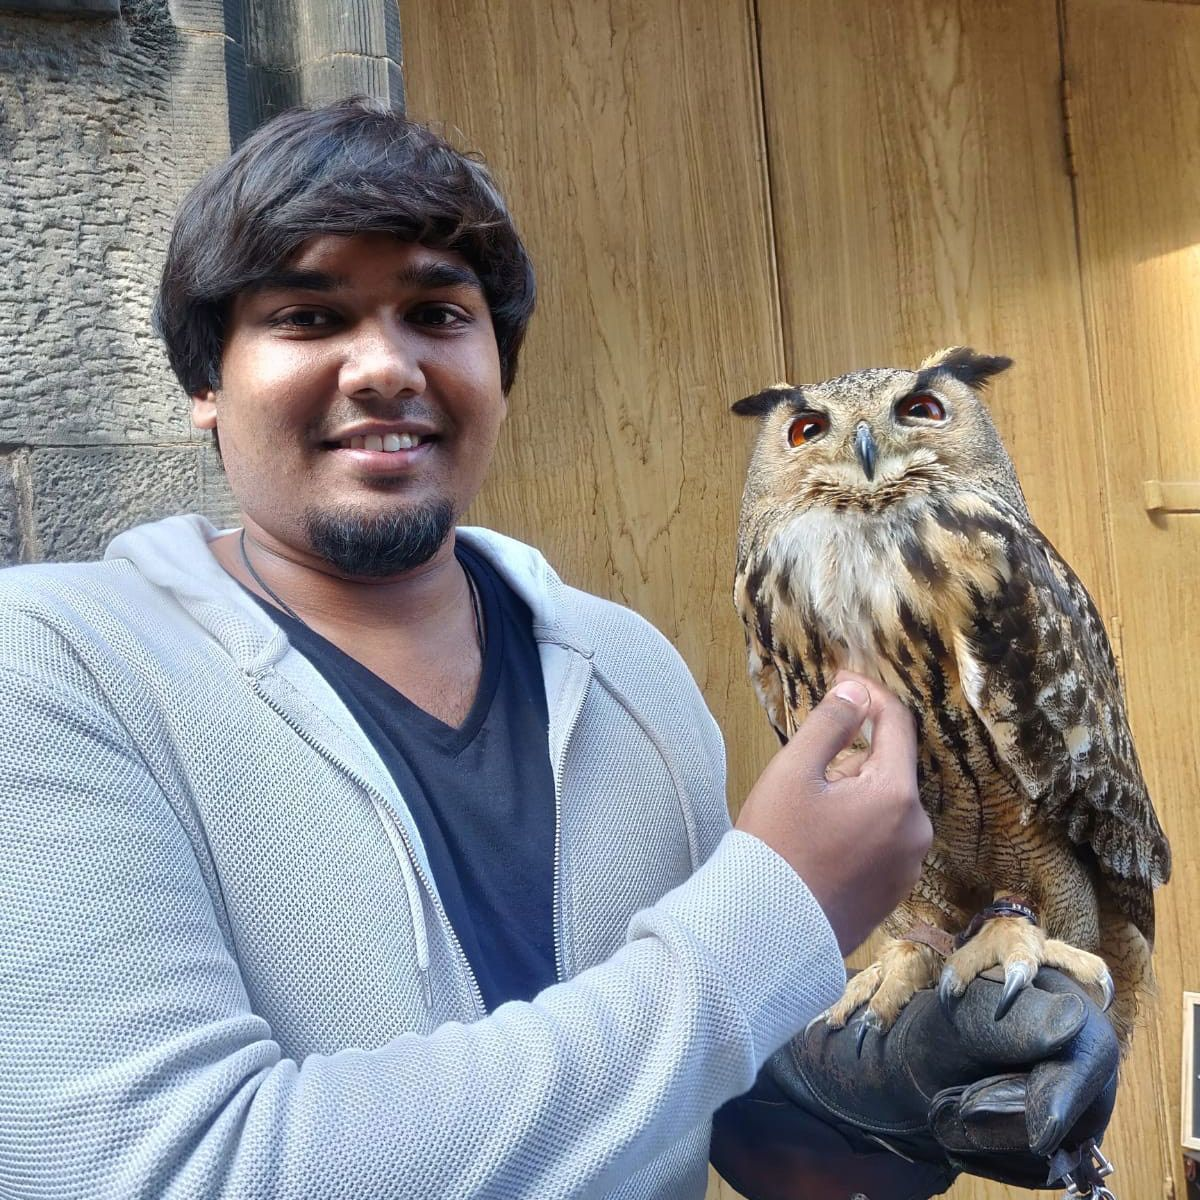 MSc Oil & Gas Engineering graduate Vignesh Prabakaran shares how he overcame initial home-sickness to excel at the University of Aberdeen! Congratulations Vignesh! 🎓🎉 #Classof2020 #ABDNFamily https://t.co/FmxDLlgIhQ https://t.co/LUHM1r5zTM